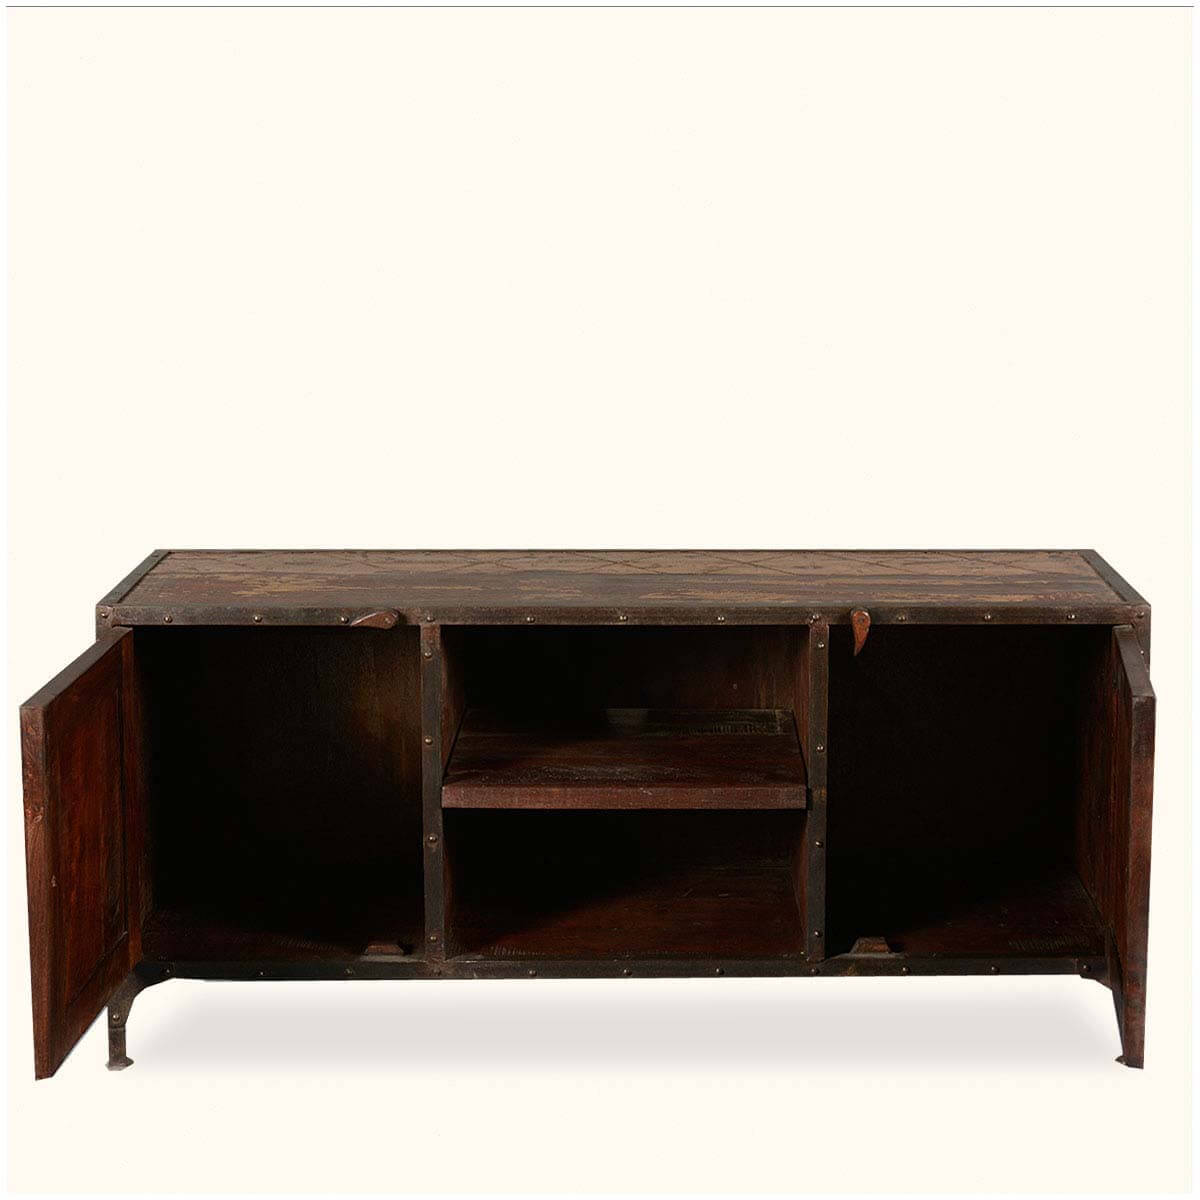 Rustic Industrial Reclaimed Wood & Iron TV Stand Media Console